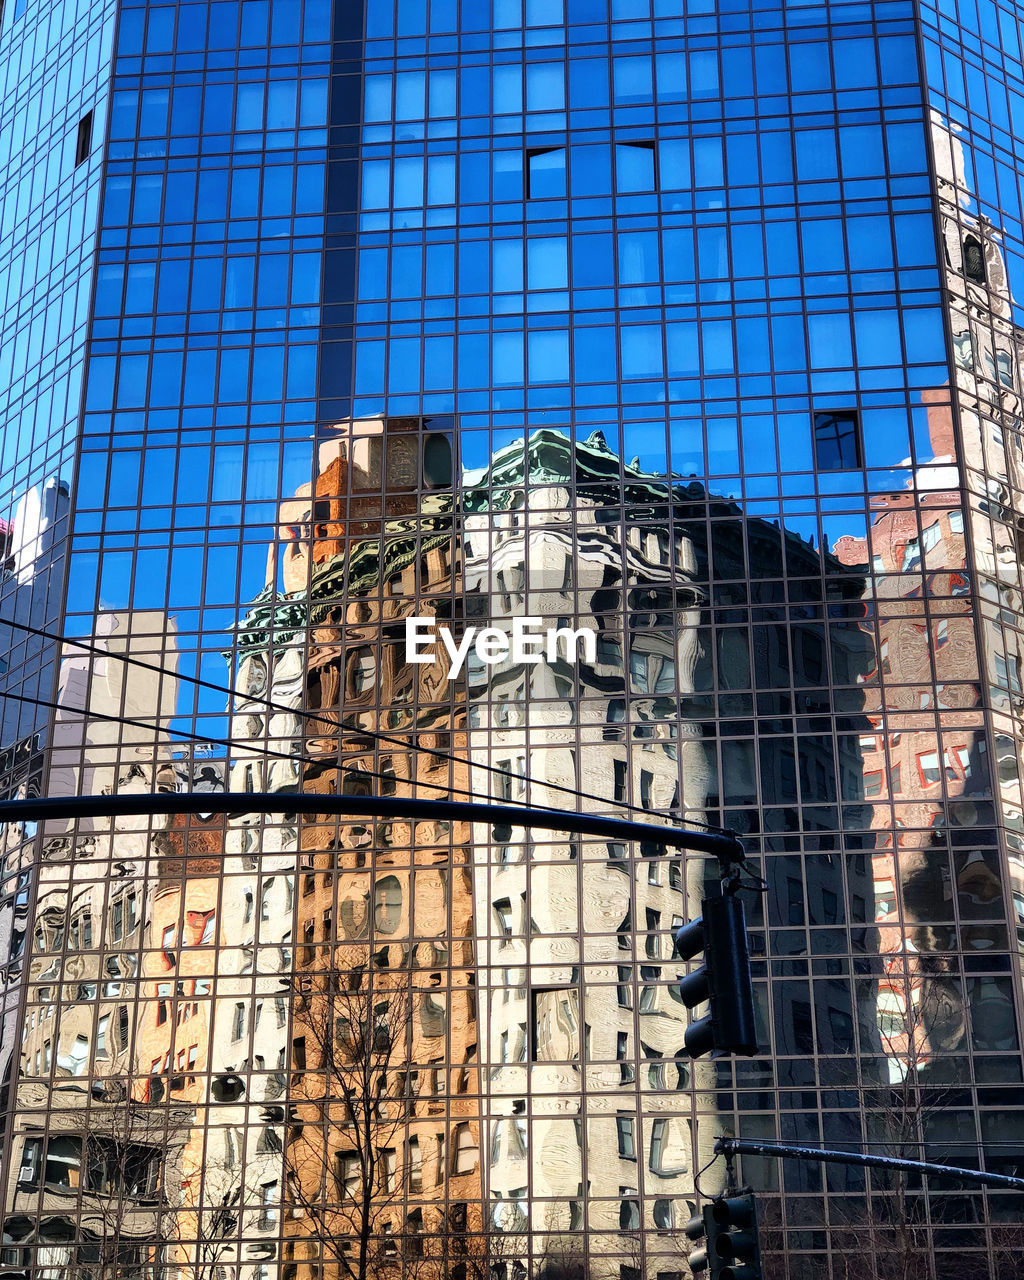 architecture, built structure, glass - material, building exterior, low angle view, building, city, reflection, modern, day, window, office building exterior, office, no people, outdoors, nature, blue, sky, sunlight, tower, skyscraper, financial district